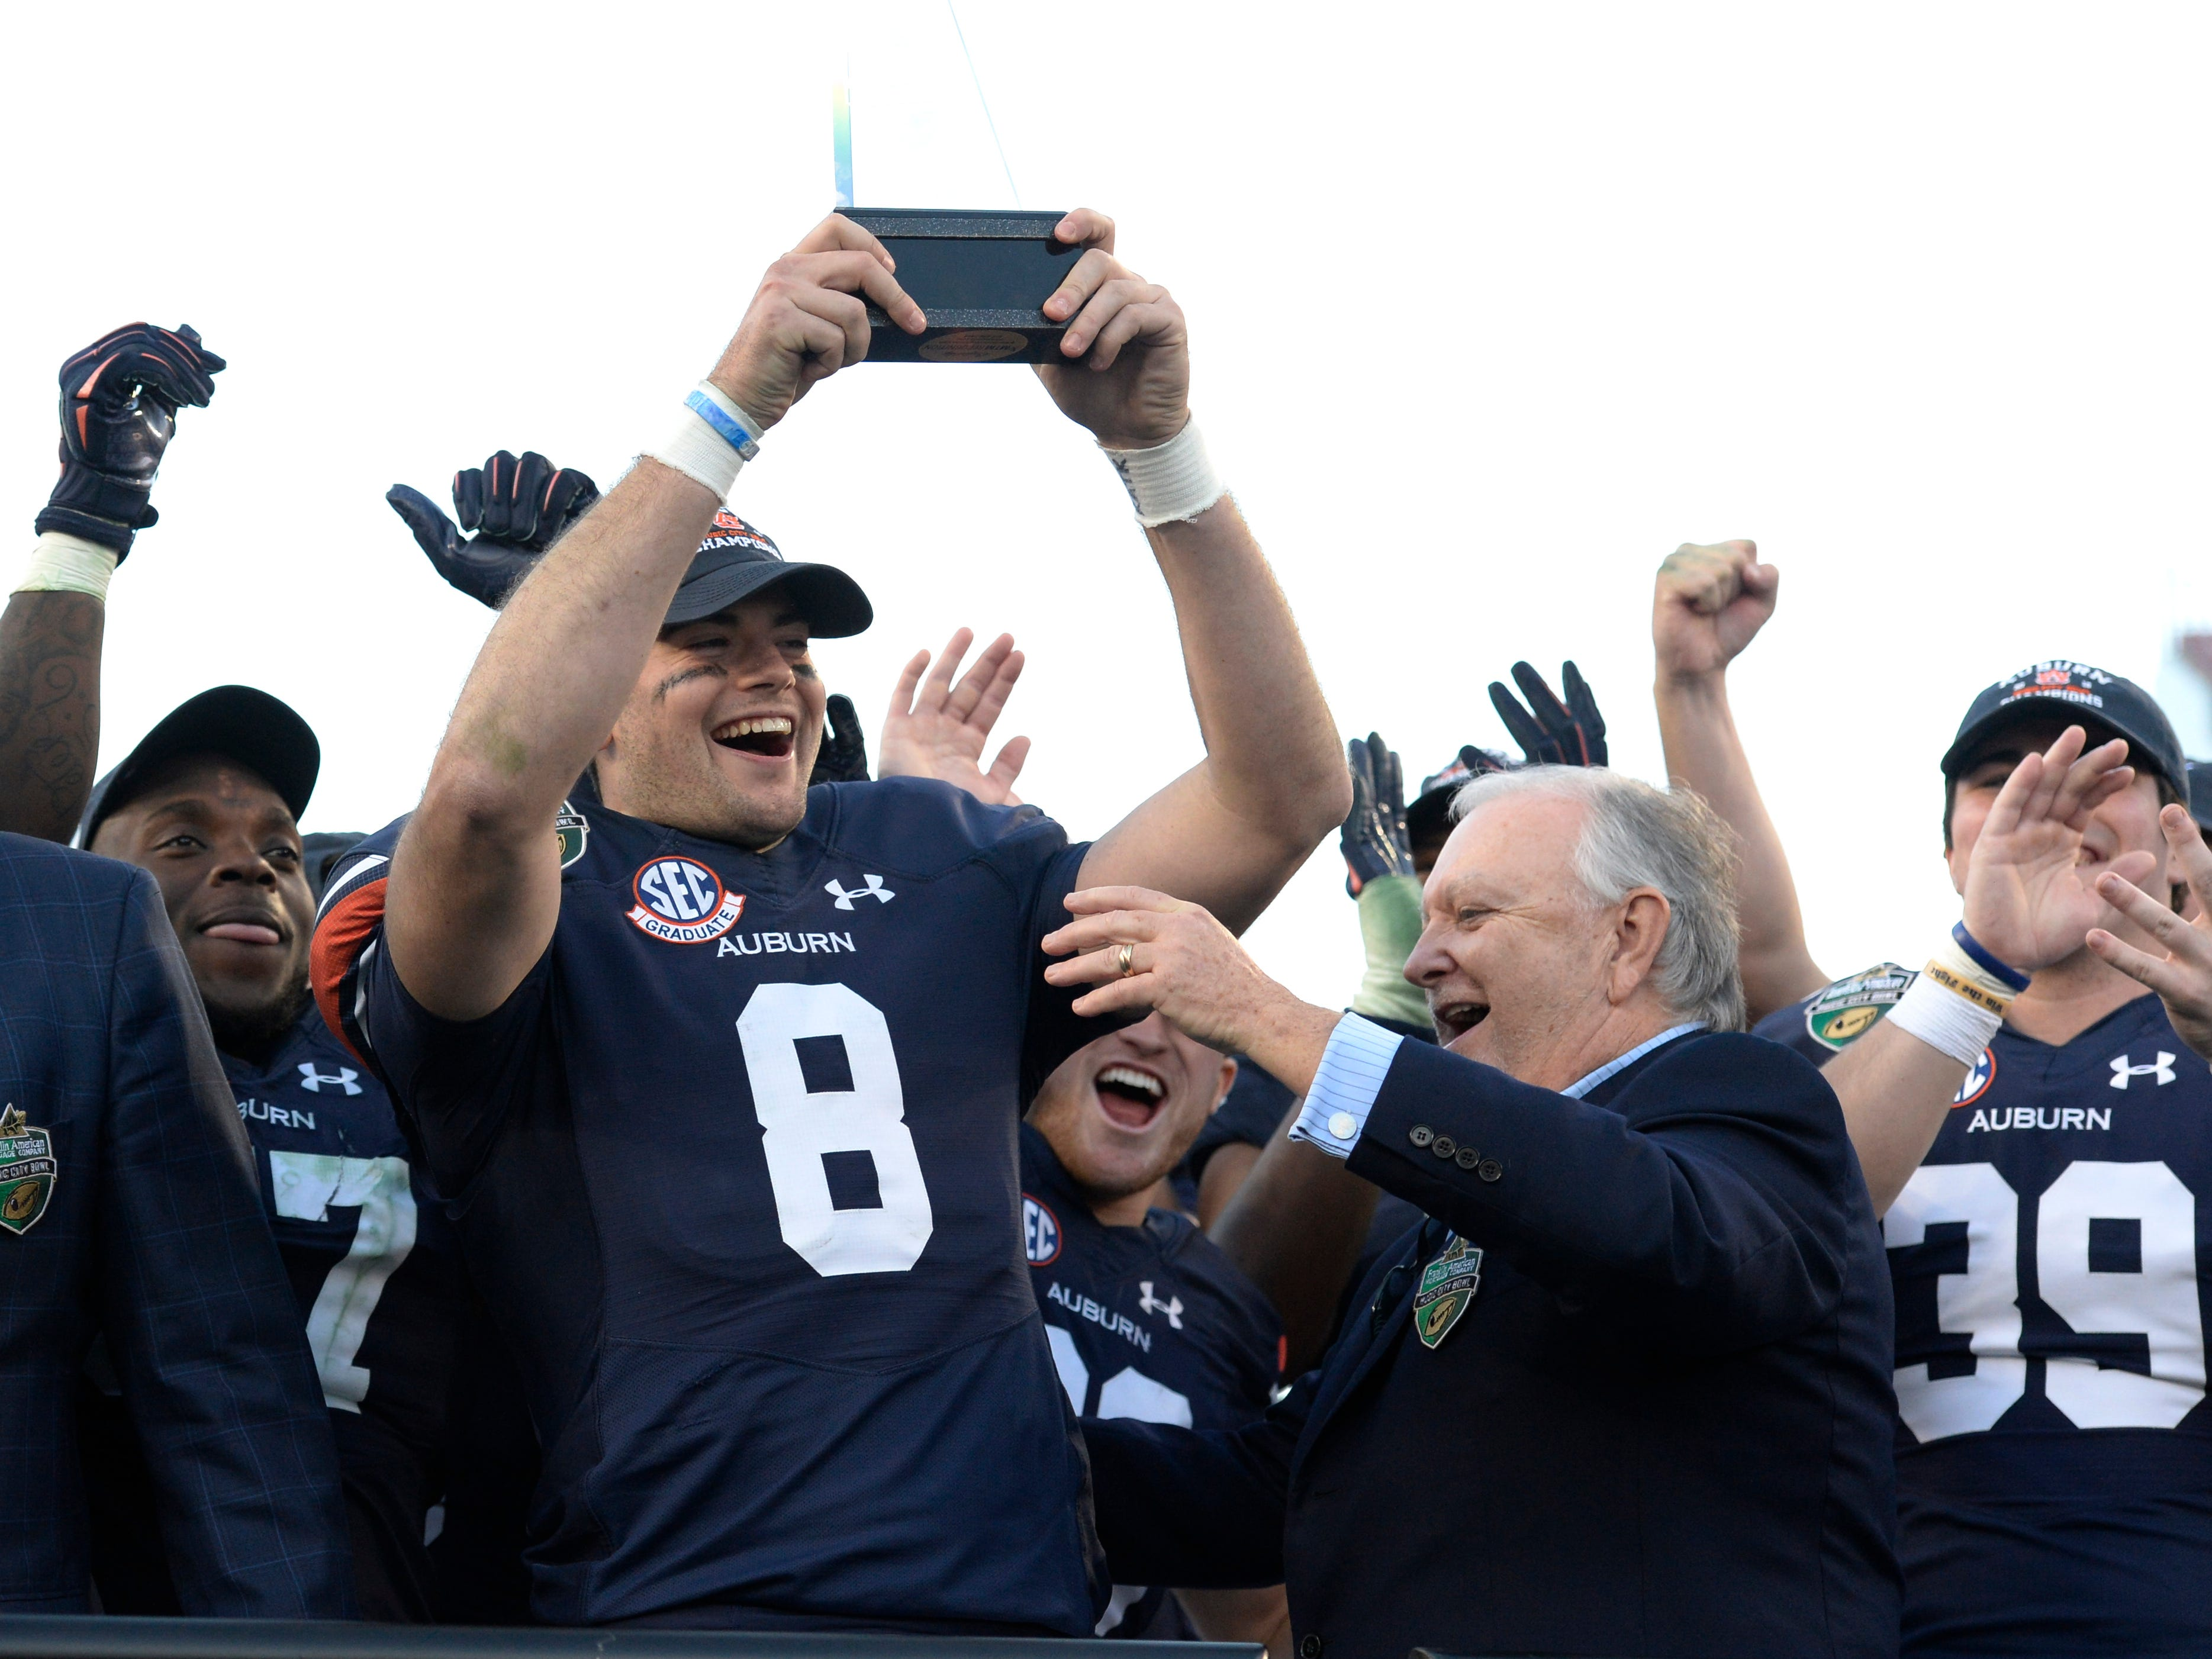 Auburn quarterback Jarrett Stidham (8) holds the MVP trophy after the team beat Purdue 63-14 in the Music City Bowl NCAA college football game Friday, Dec. 28, 2018, at Nissan Stadium in Nashville, Tenn.